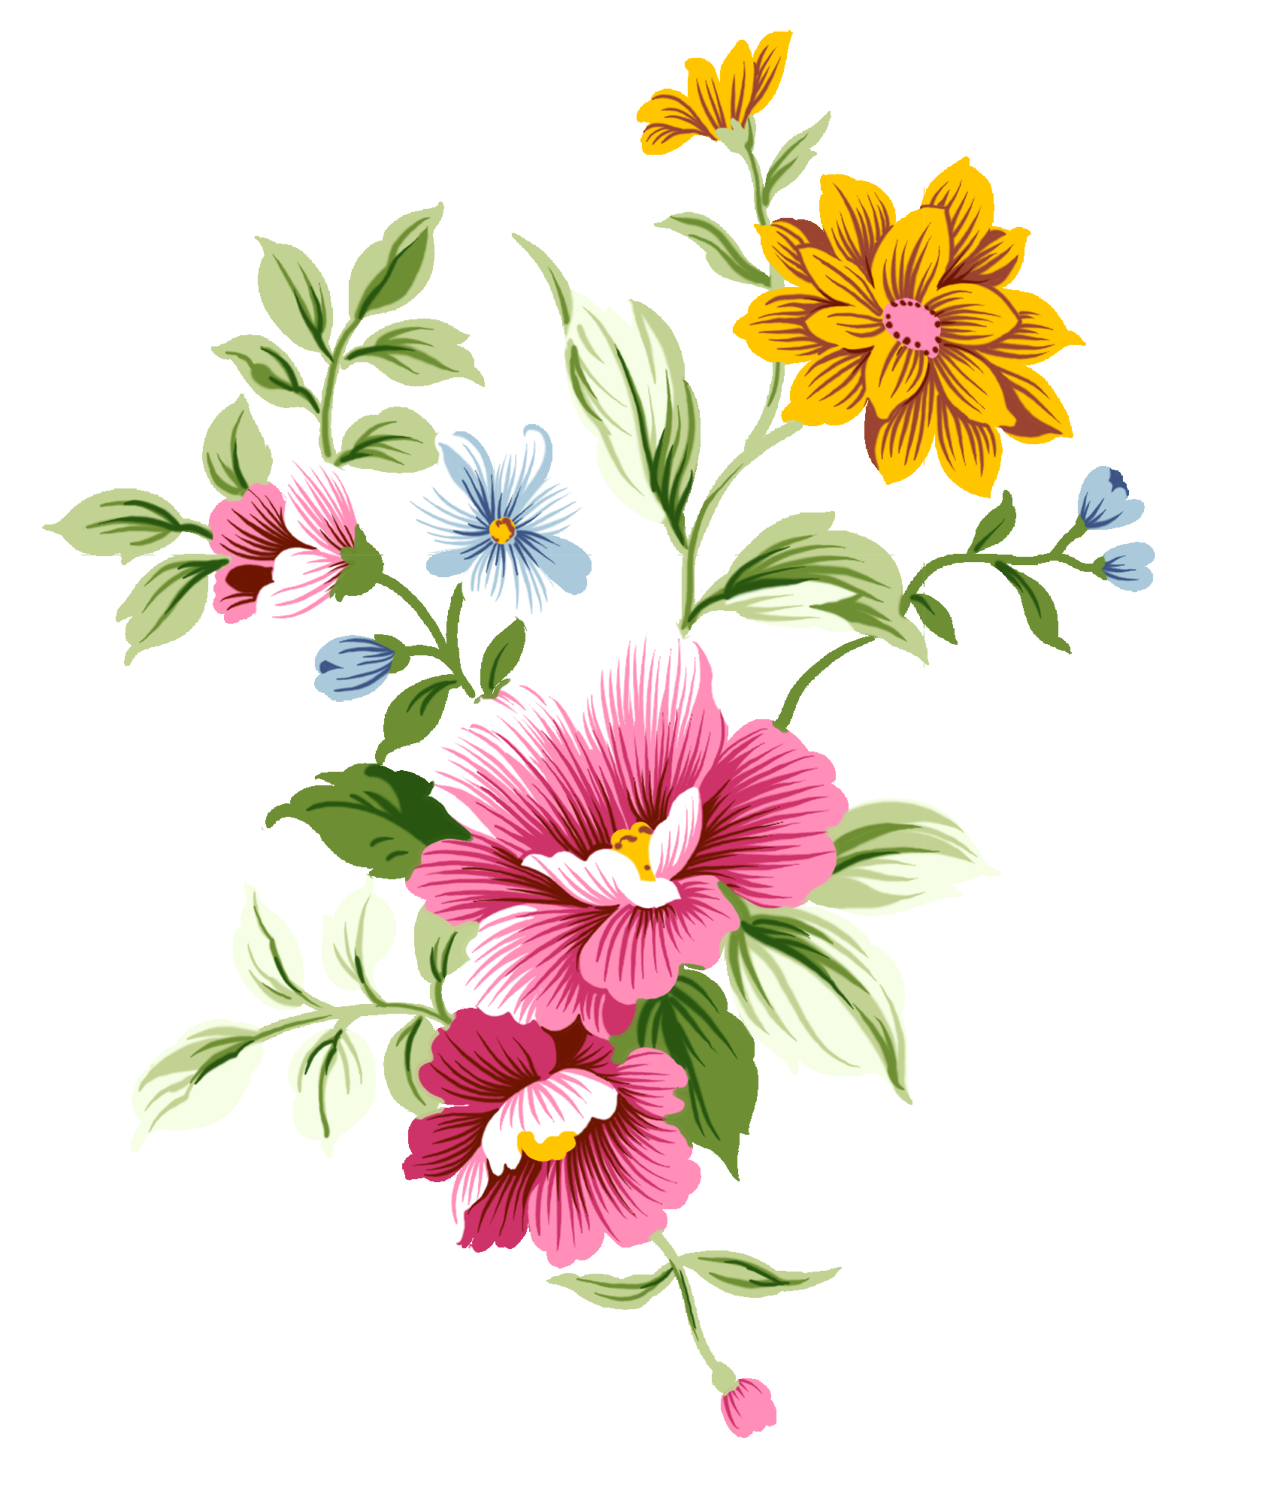 Background Transparent Png Flower Hd image #17961